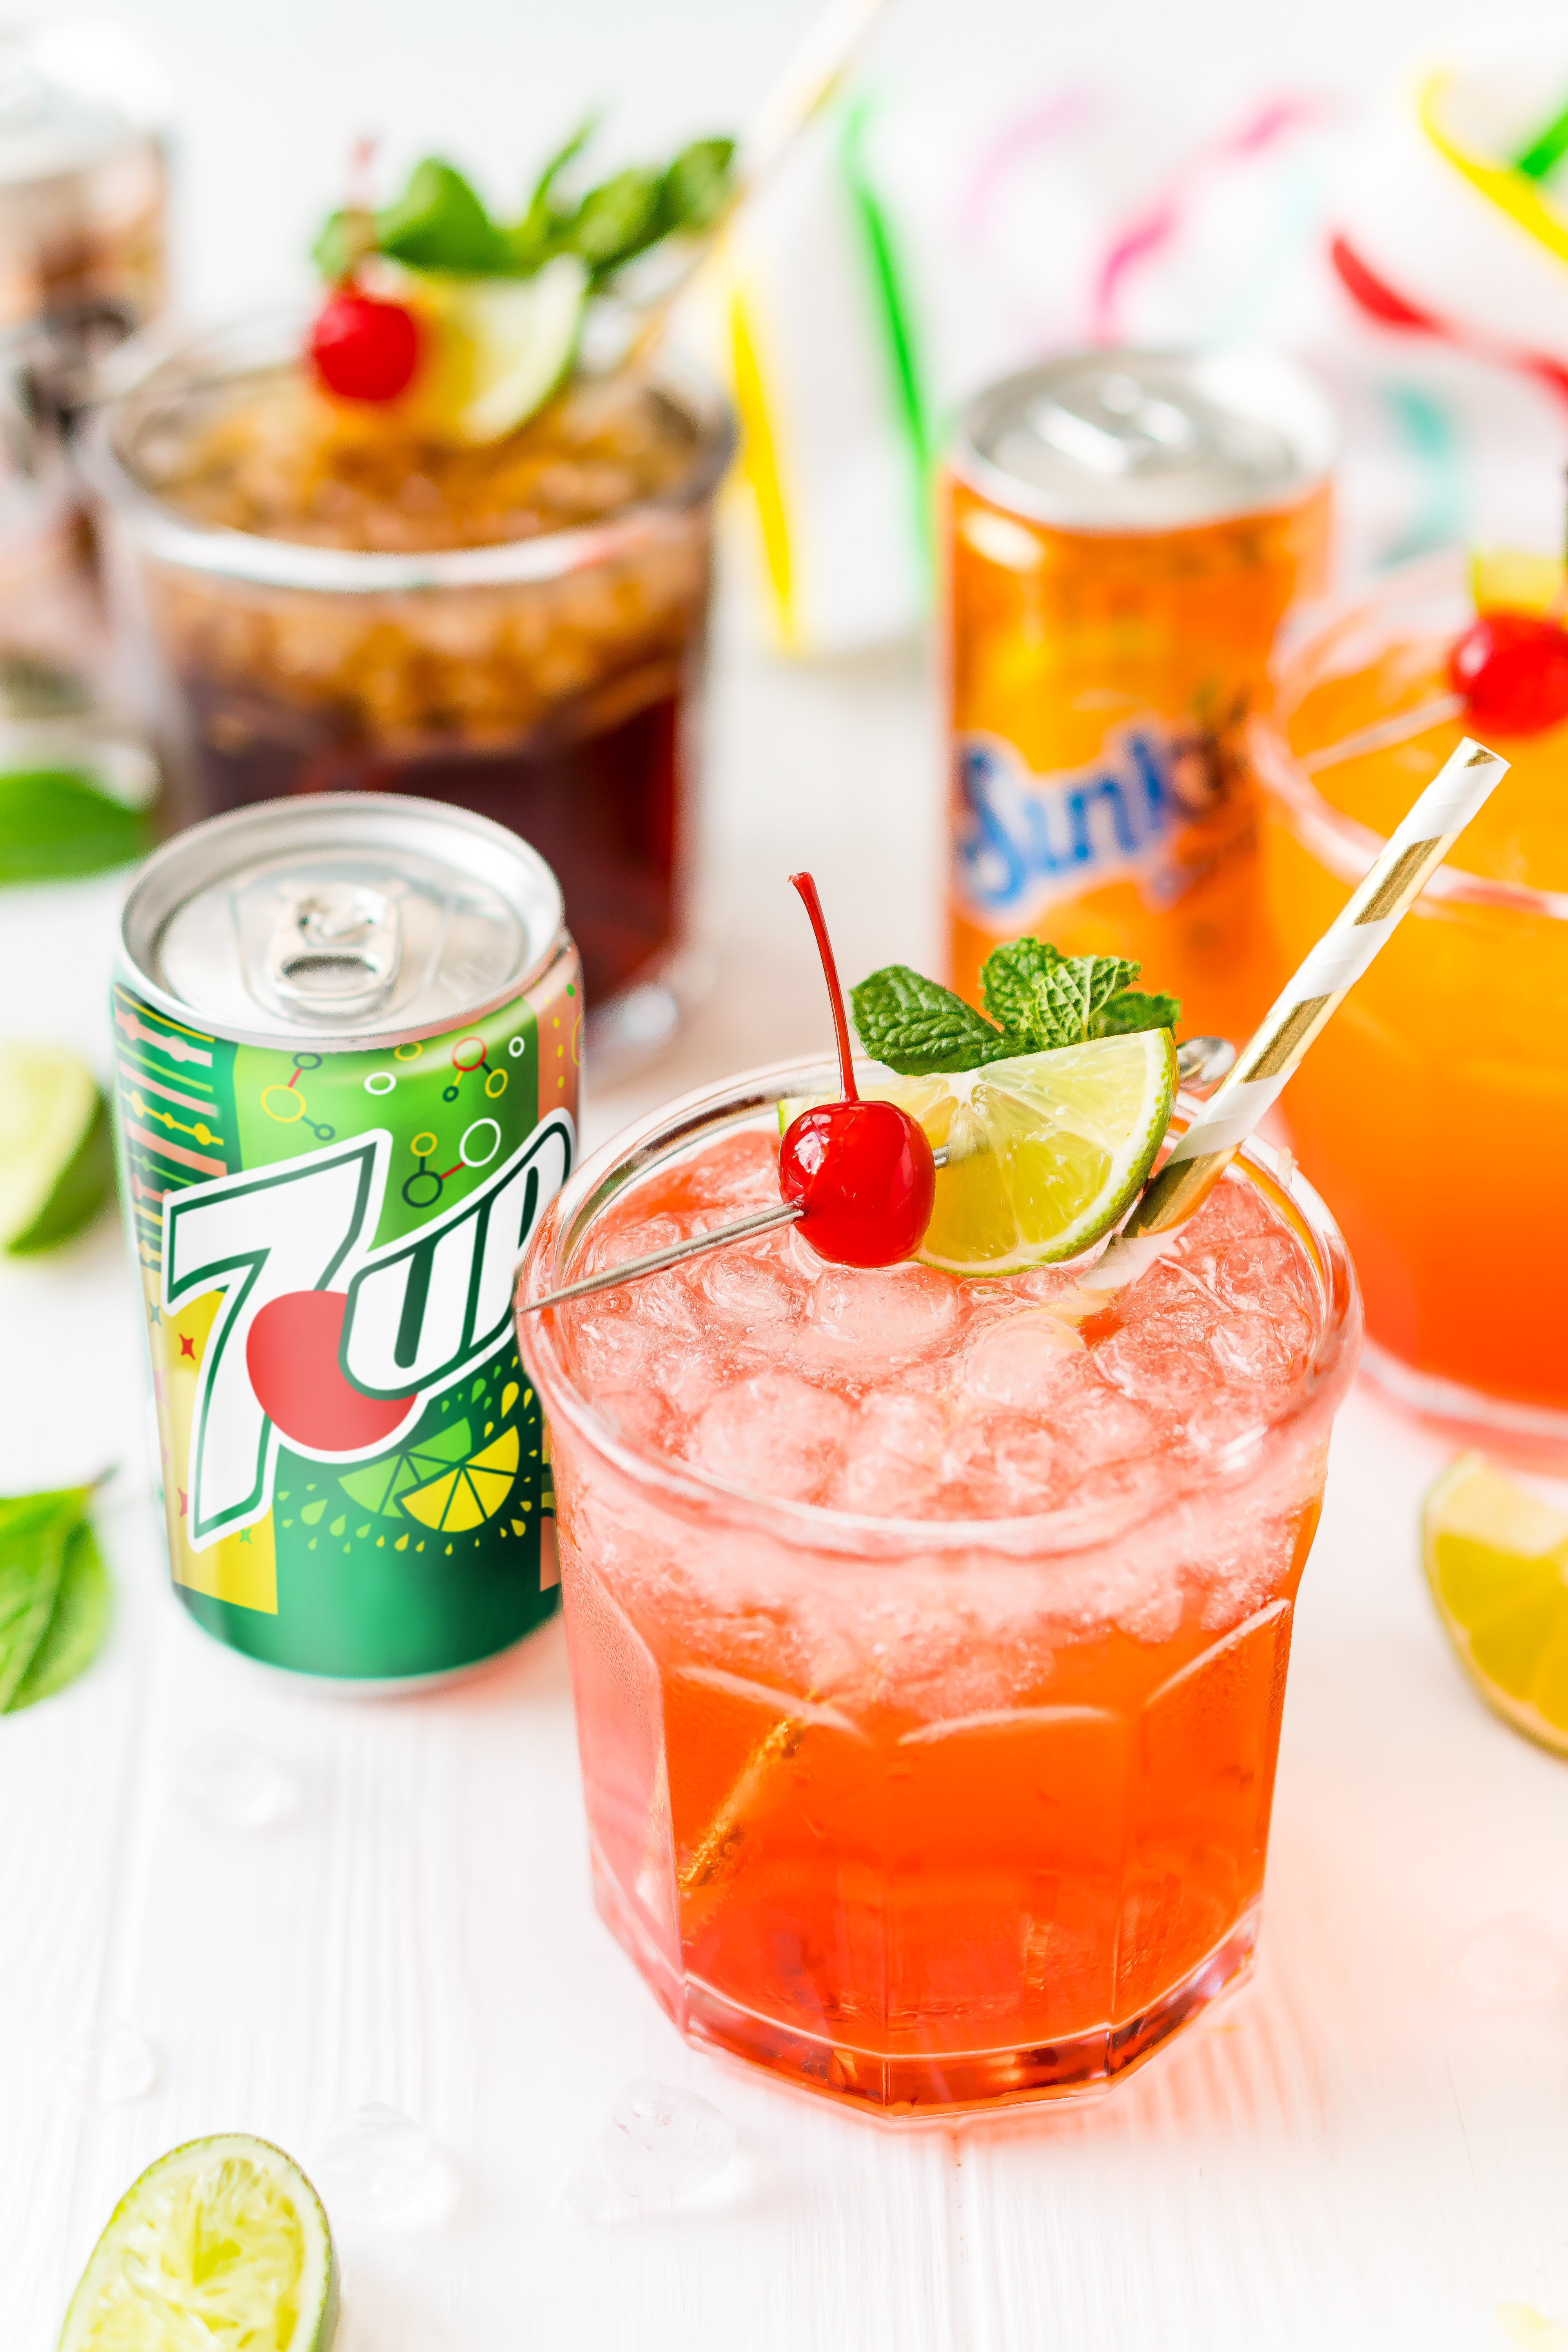 Mocktail in a glass with a can of 7UP next to it and more drinks in the background.